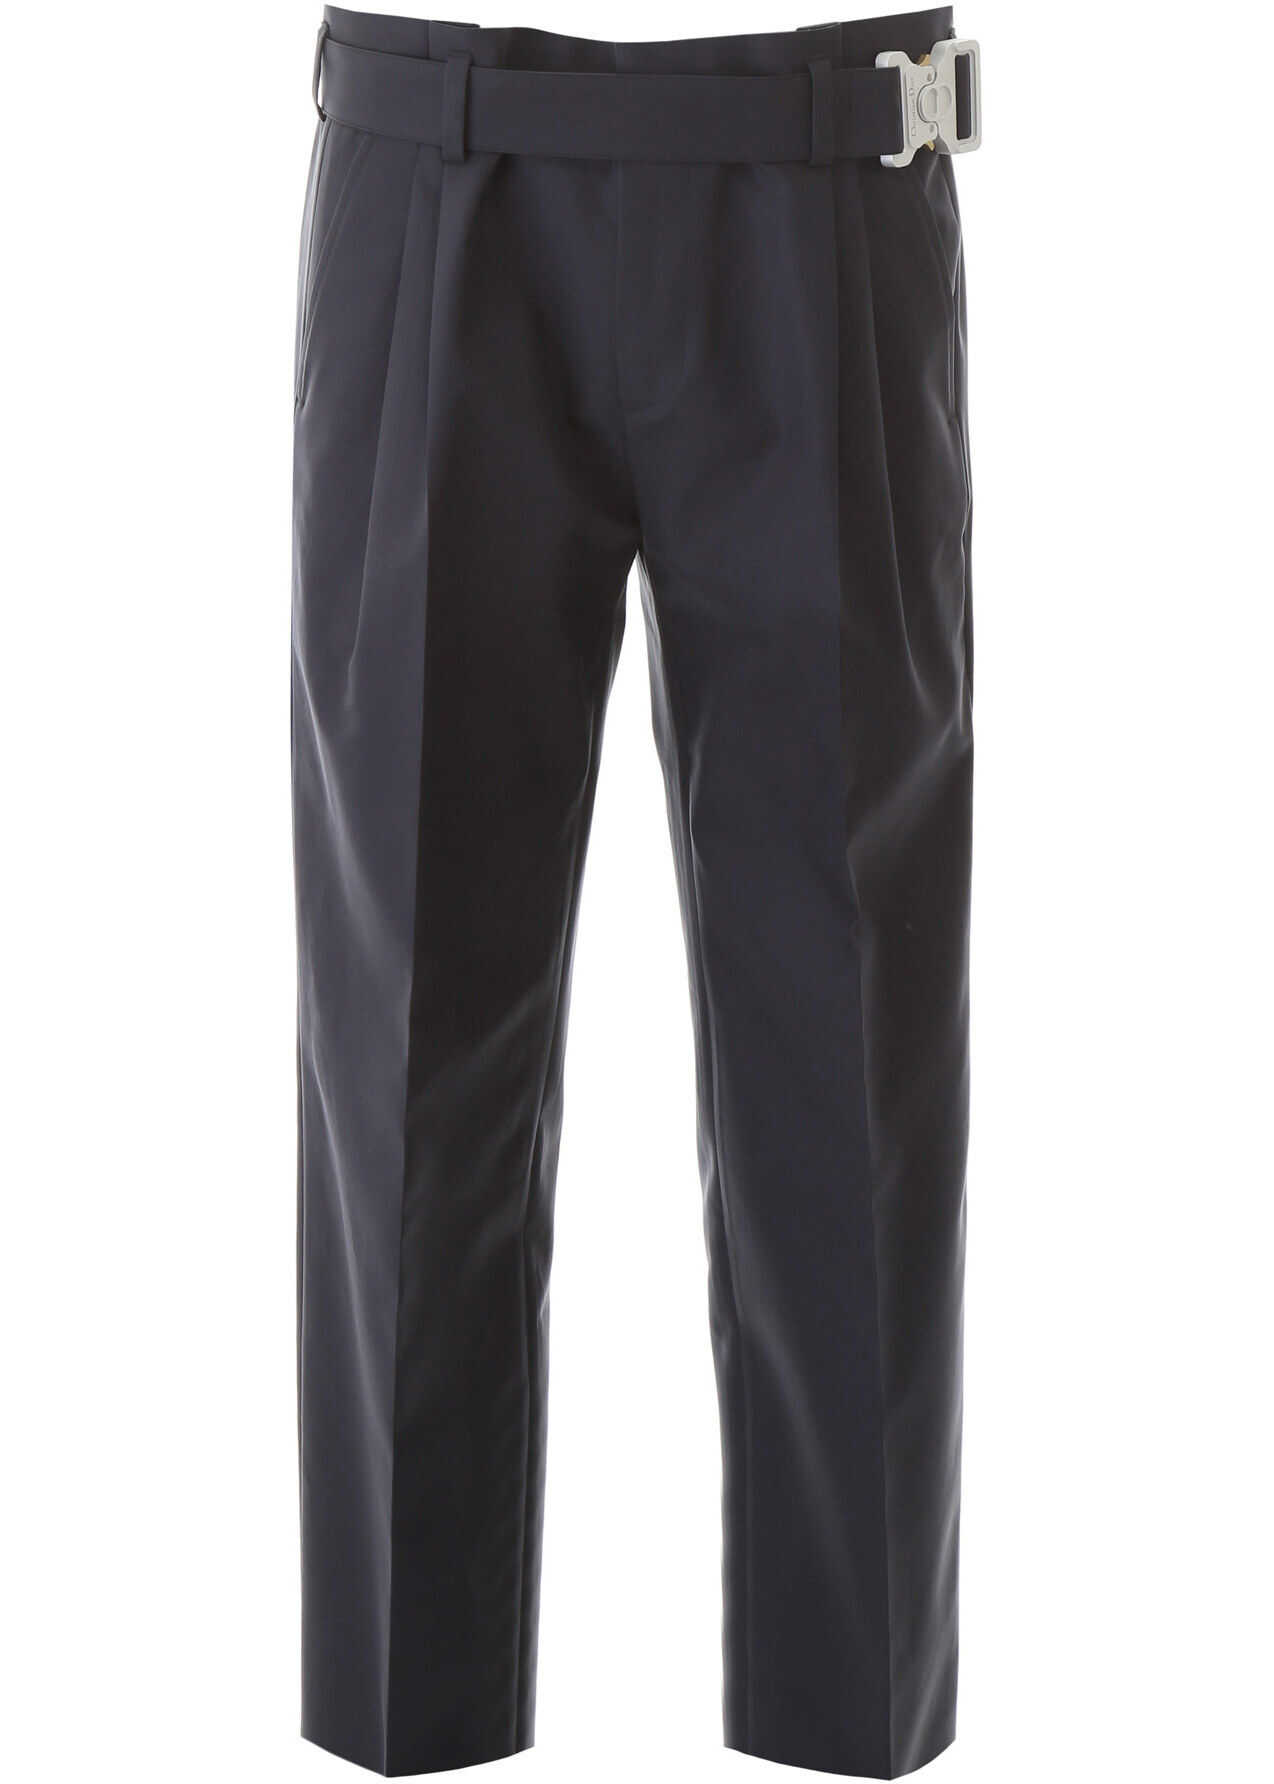 Dior Belted Pants NAVY BLUE